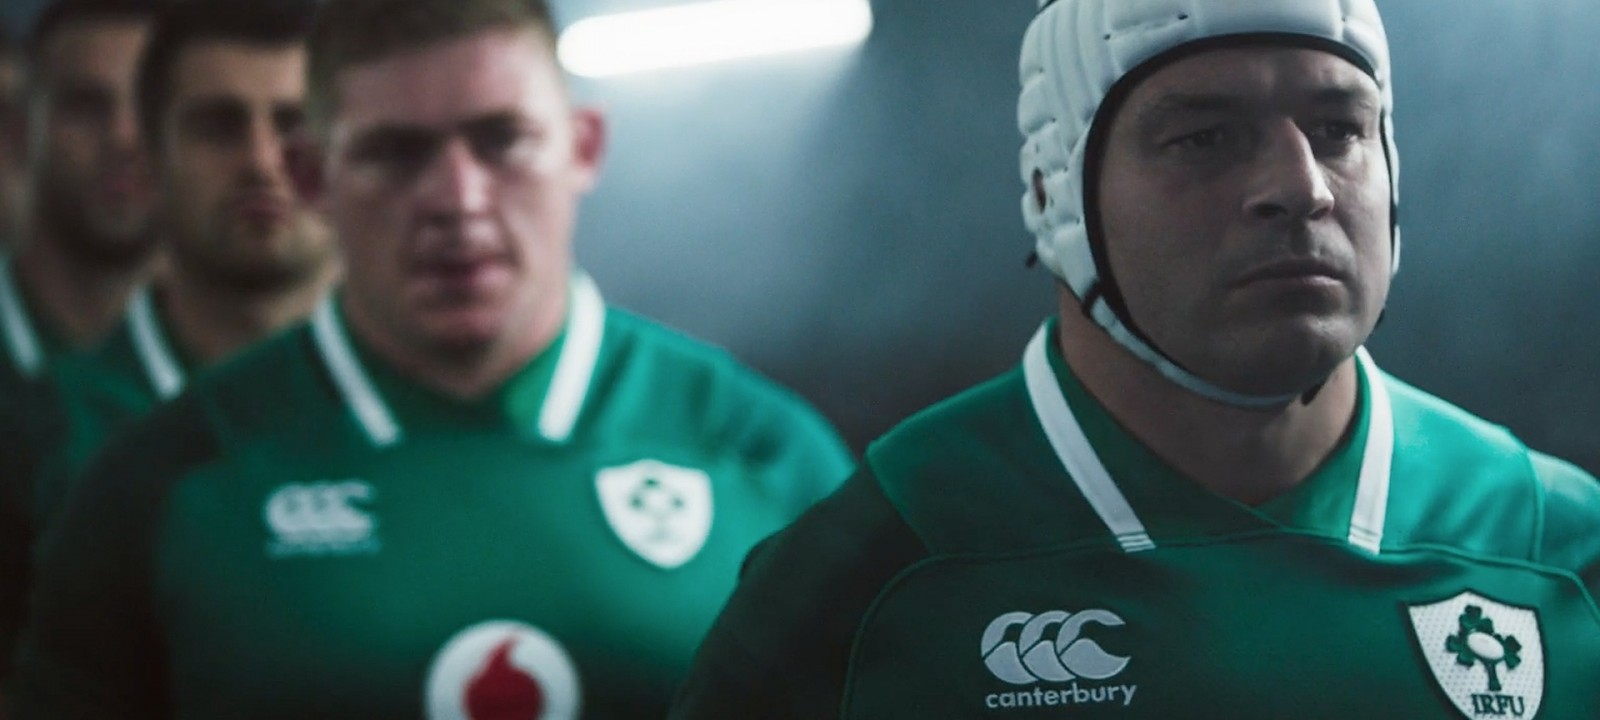 Vodafone Ireland - Who We Are Is How We Play